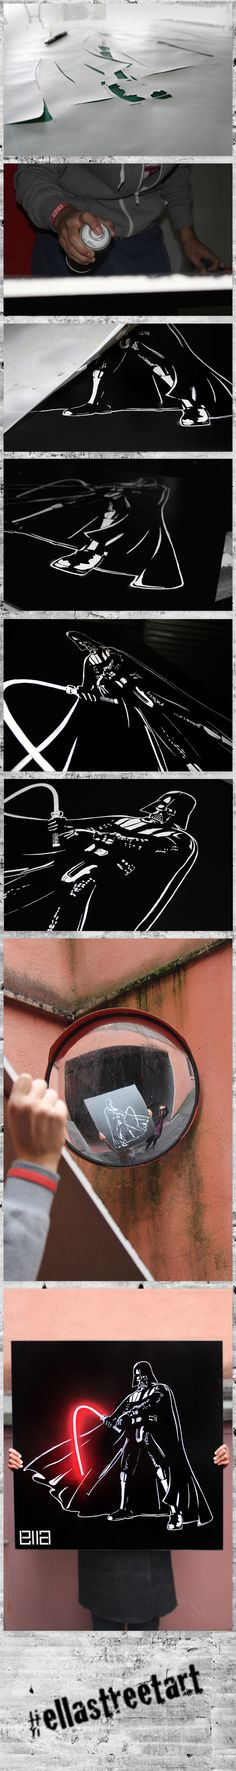 Darth Vader Off // LImpotenza Nera by Ella , via Behance